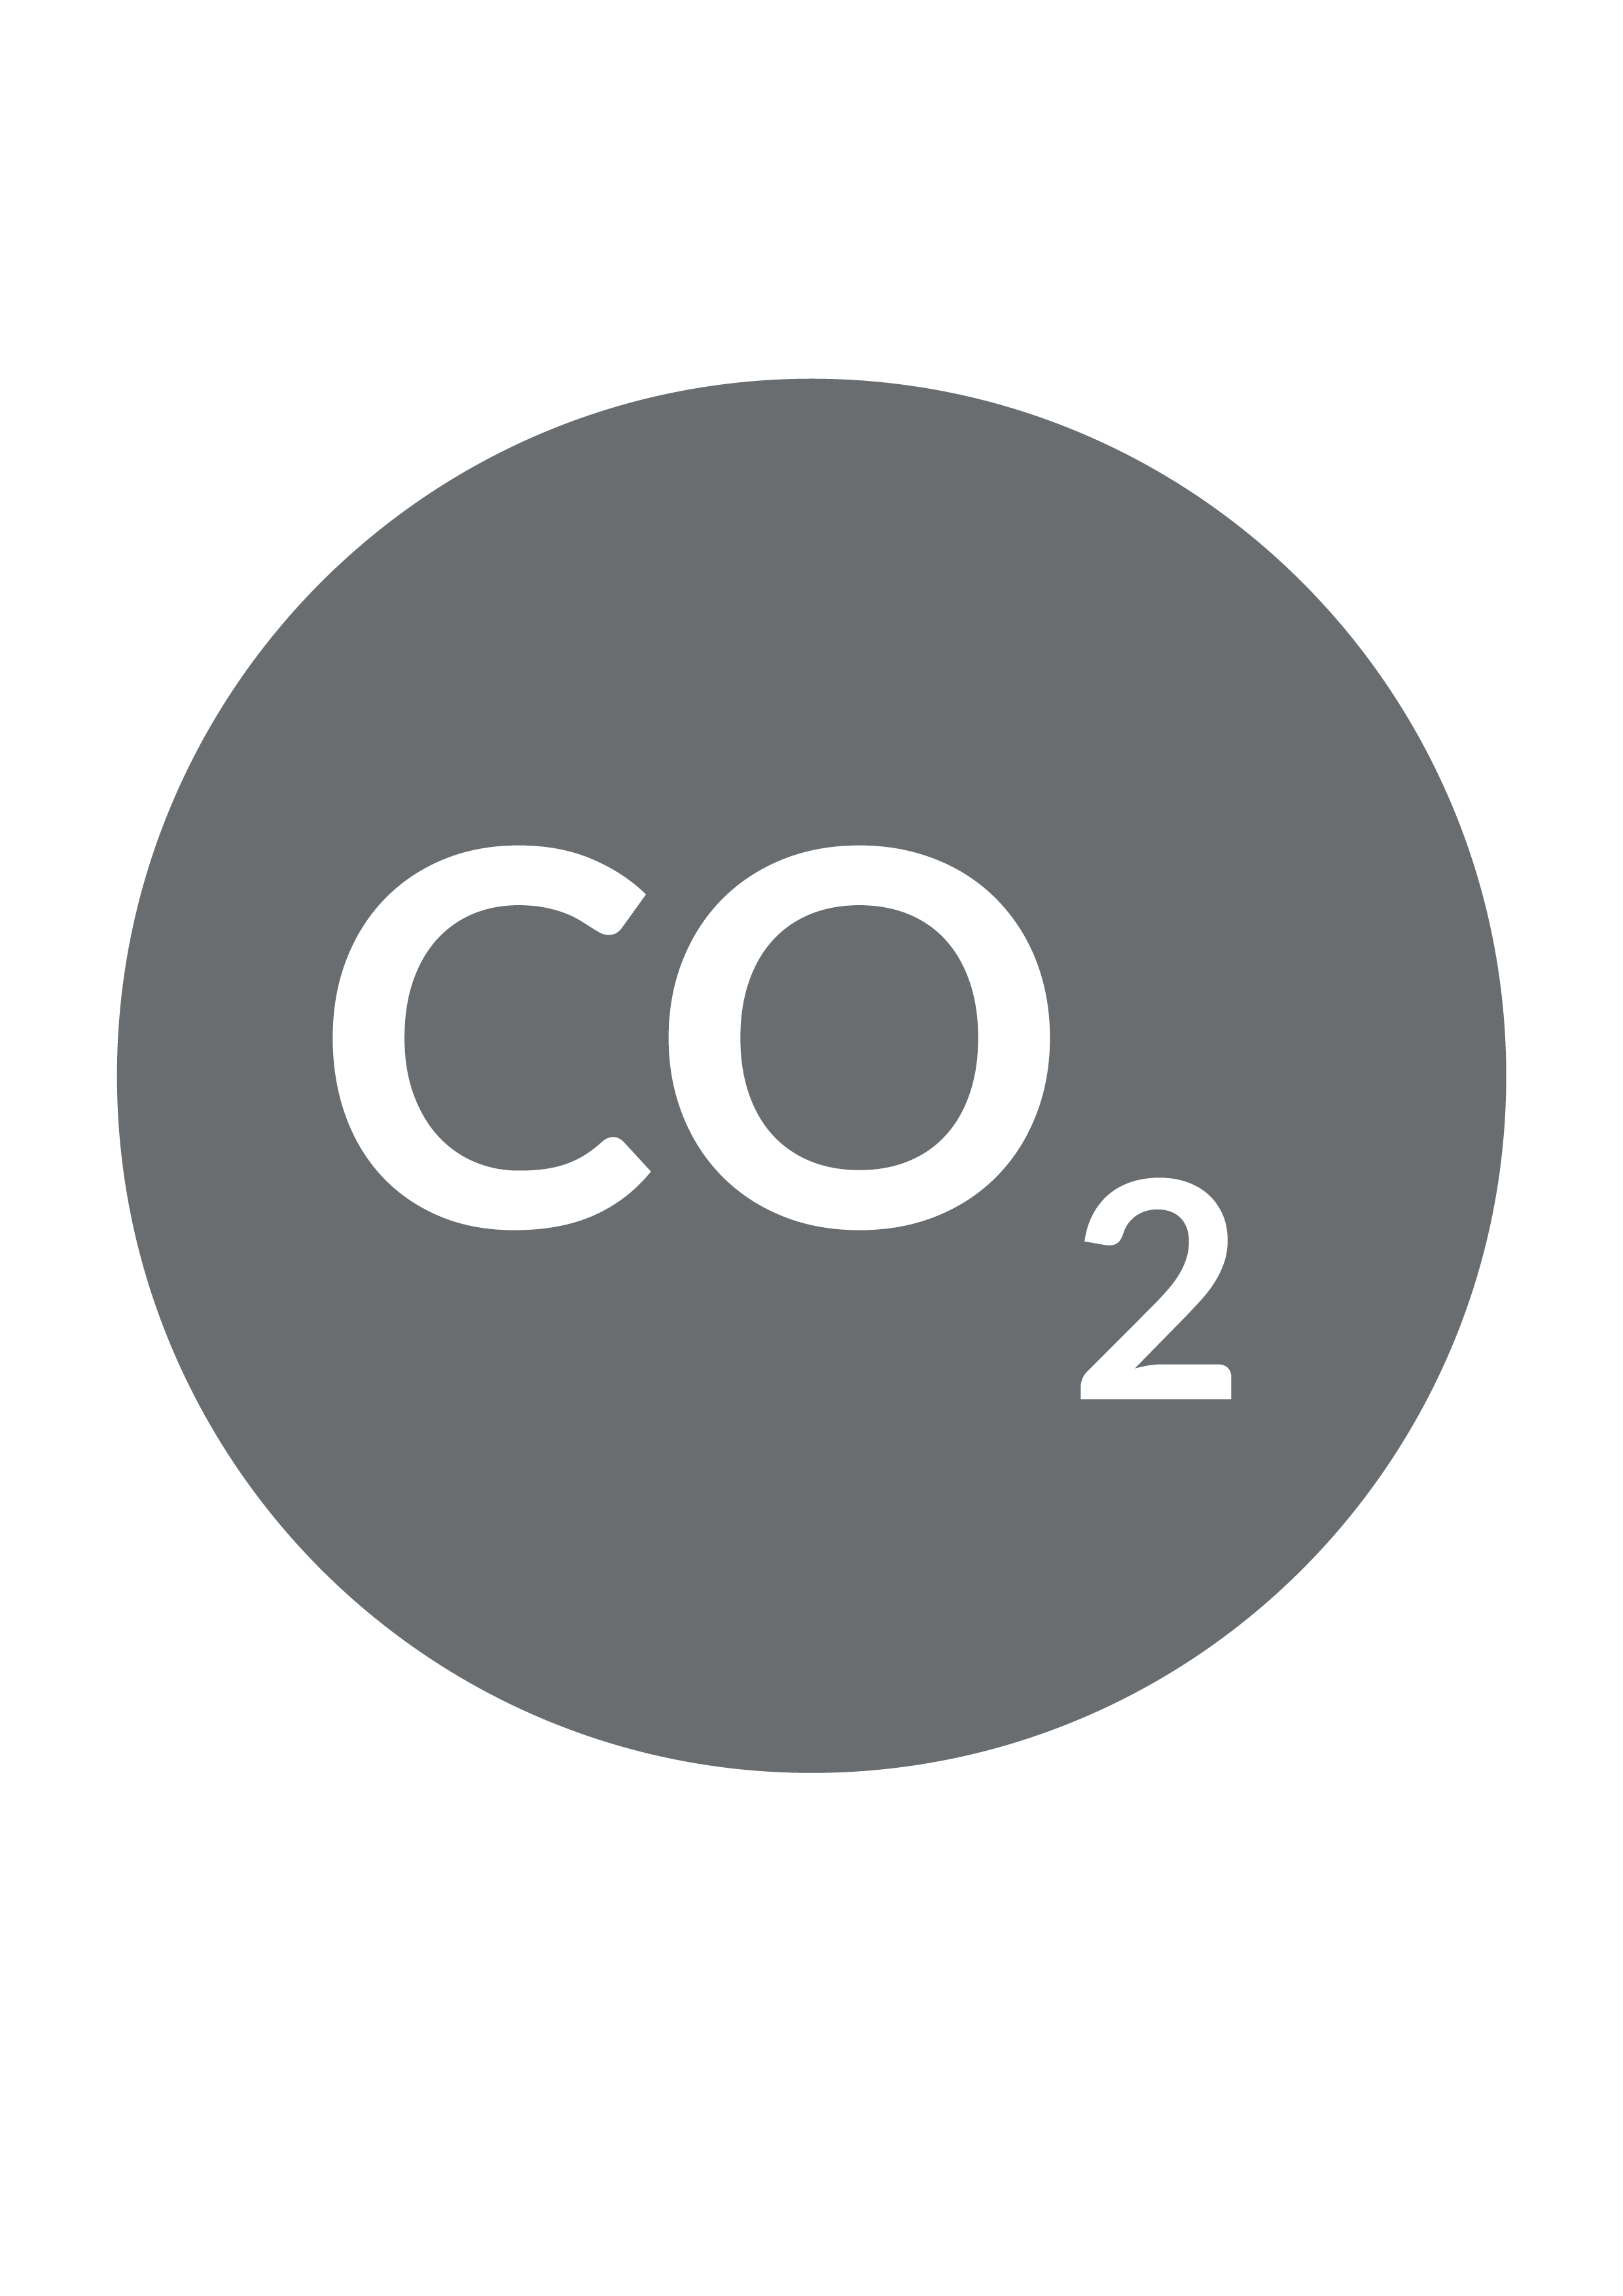 Reduced Co2 icon